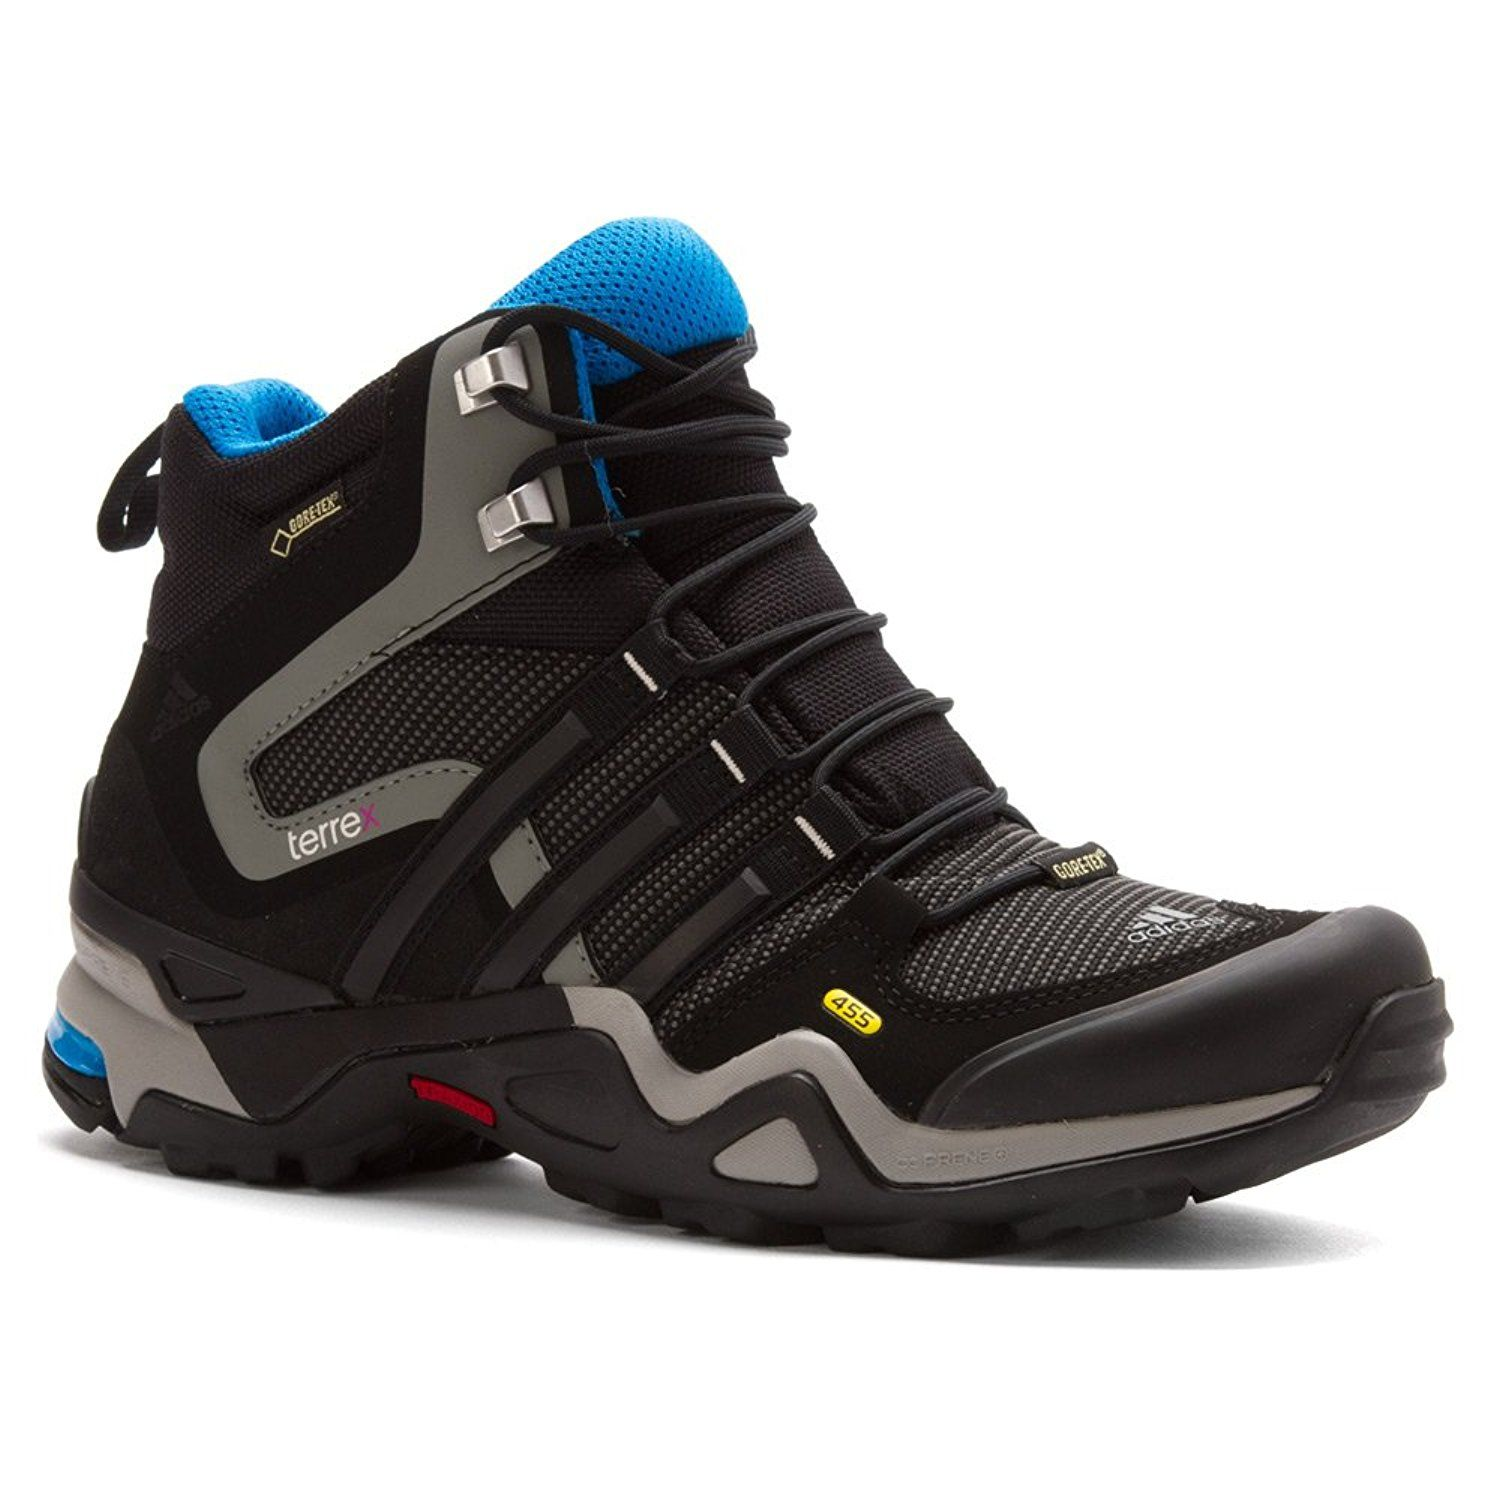 adidas Outdoor Terrex Fast X Mid GTX Hiking Boot- Women s   You can find  more details by visiting the image link. 4de61db13